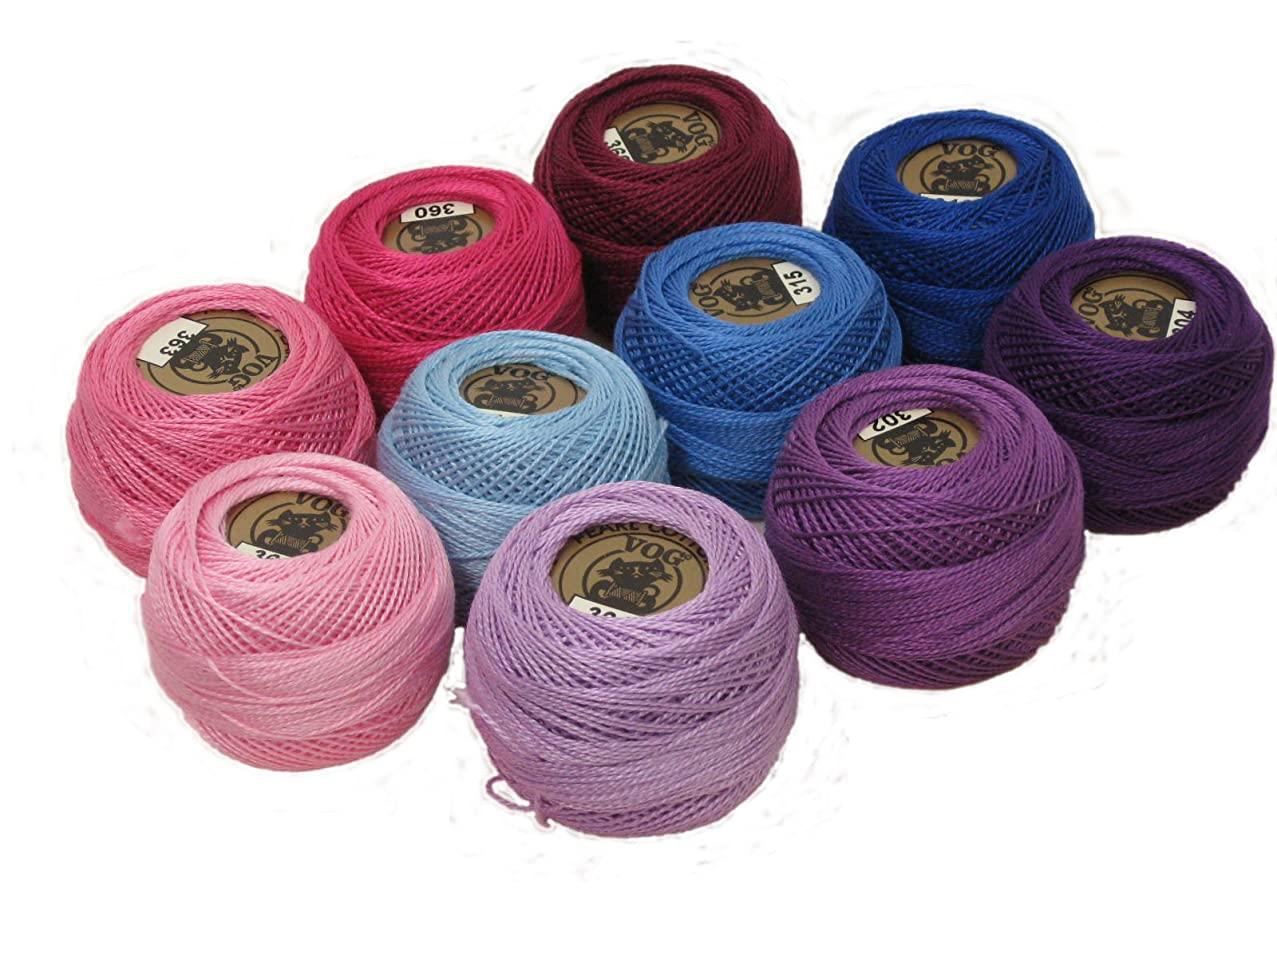 Vog Perle Cotton Size 8 Embroidery Threads - Set of 10 Balls (10gr Each) - Pink, Purple and Blue Shades (Set No. 1)